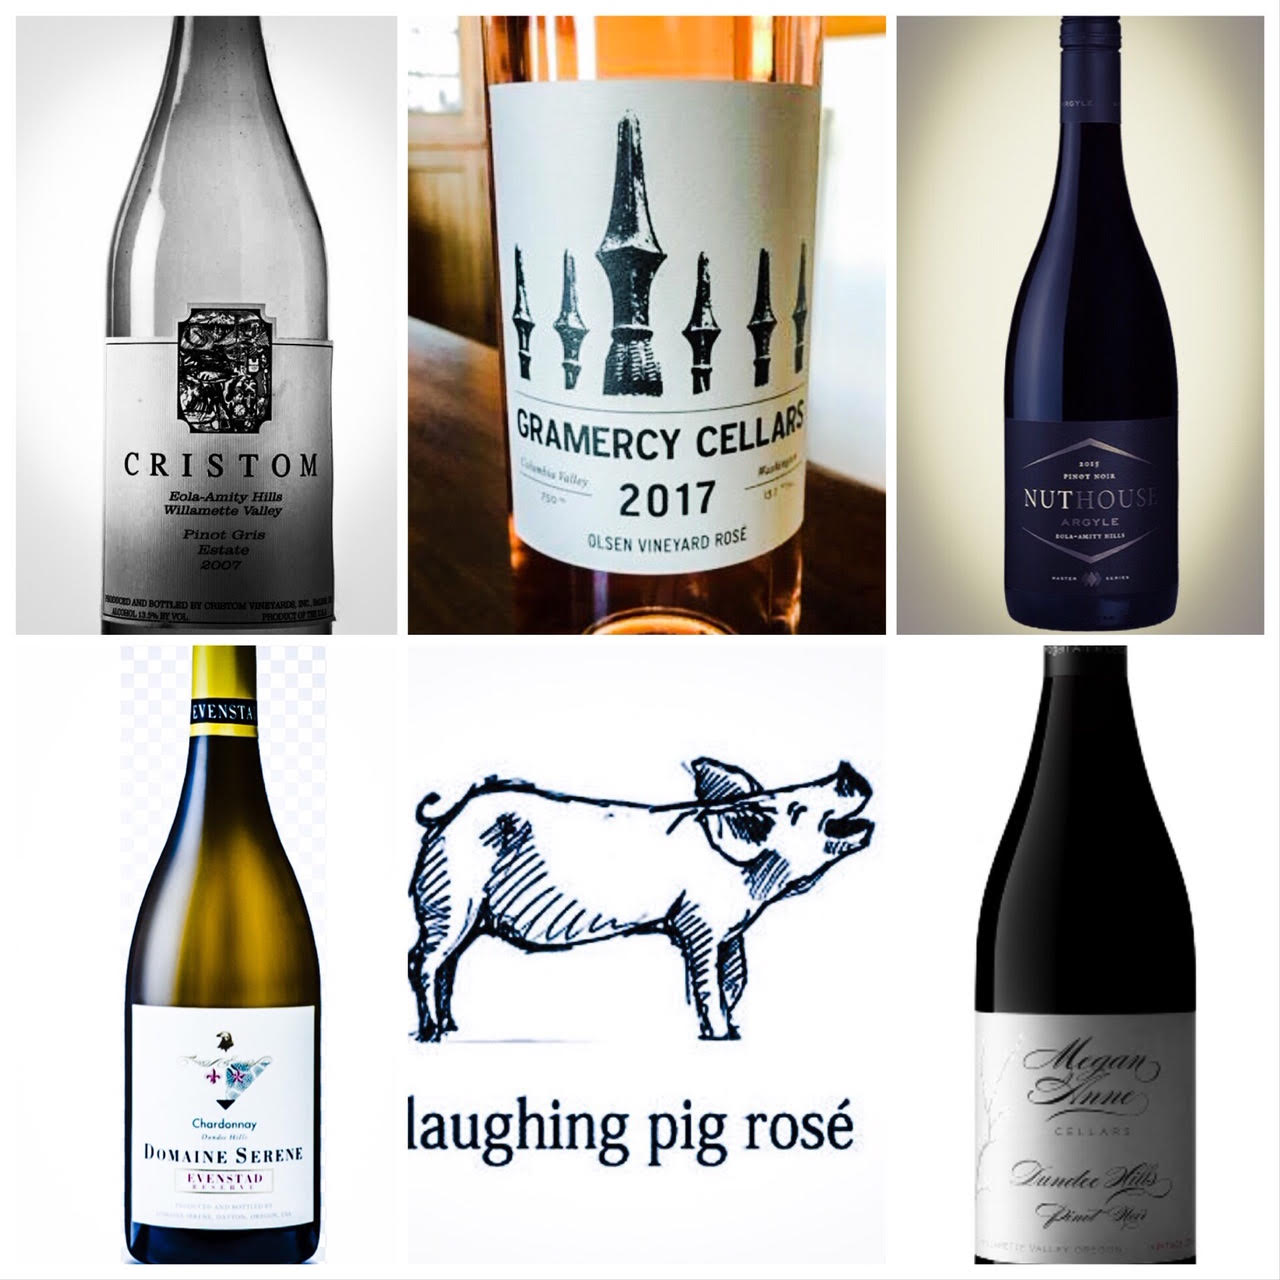 Here we have a few of many beautiful wines that would sit marvelously at your Thanksgiving table.